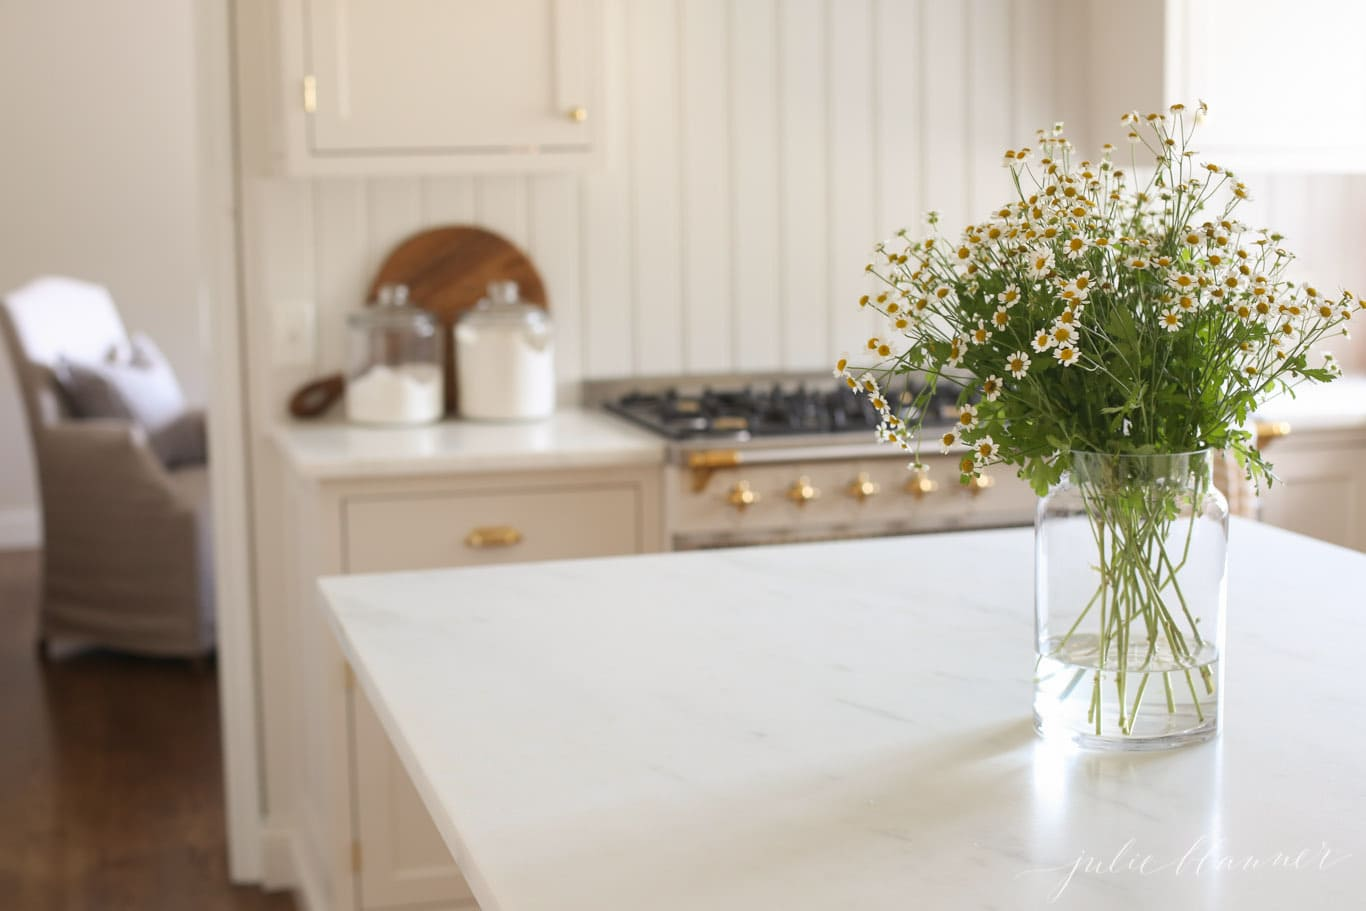 A cream kitchen with marble countertops and a vase of flowers on the island.